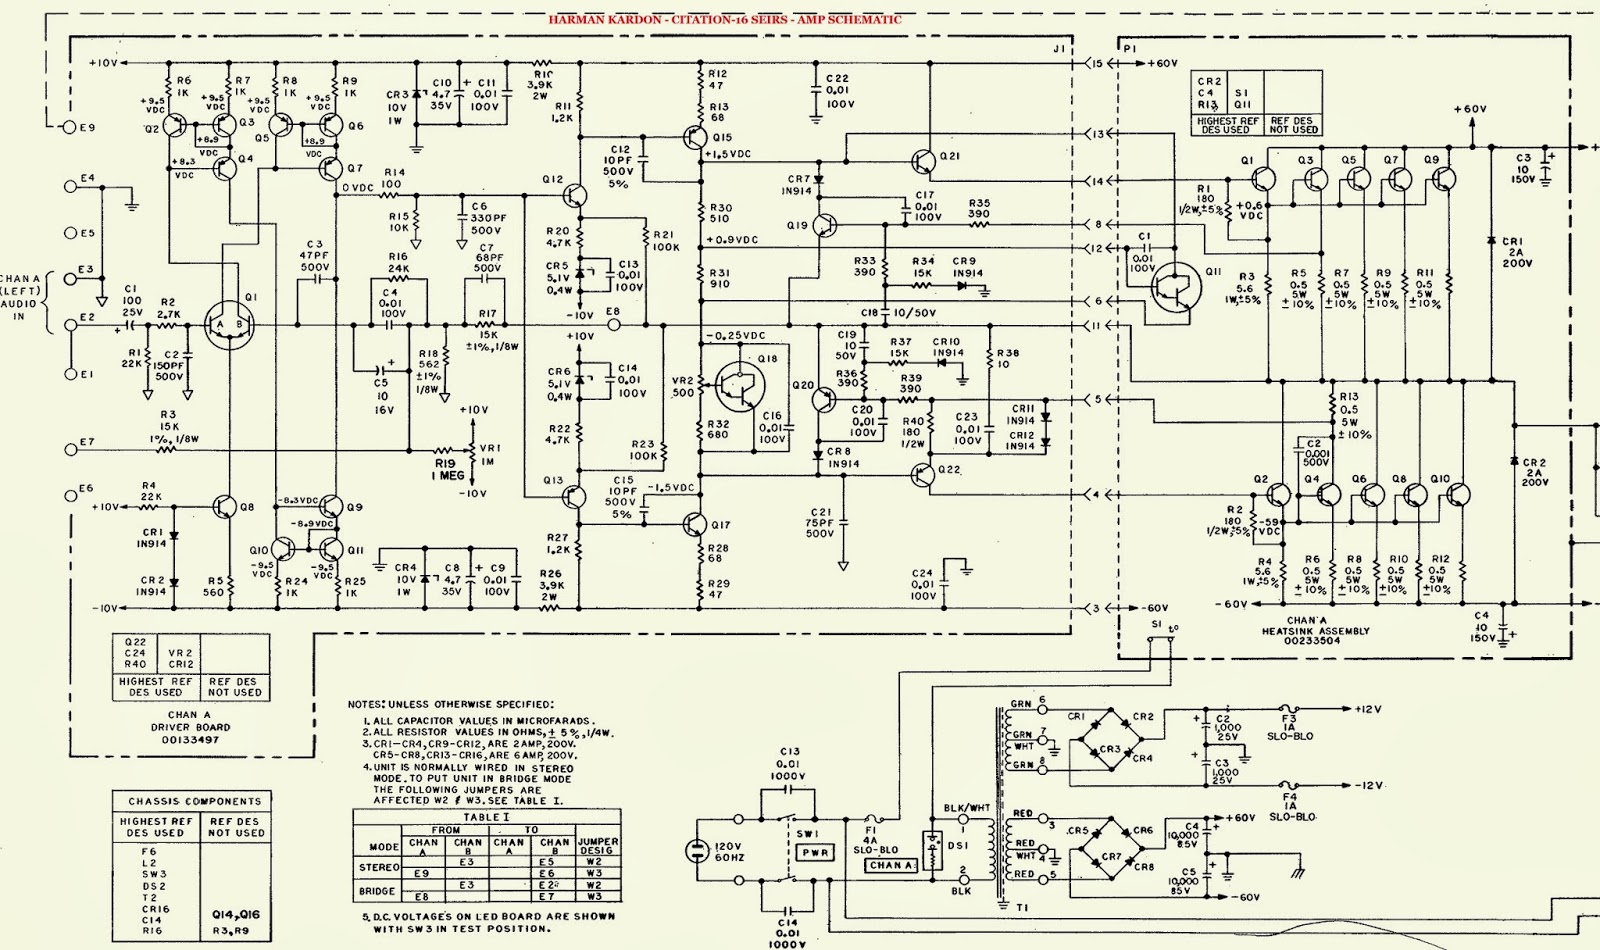 led wiring diagrams 1965 mustang diagram electro help: harman-kardon - citation-16 series stereo amp schematic [circuit diagram]